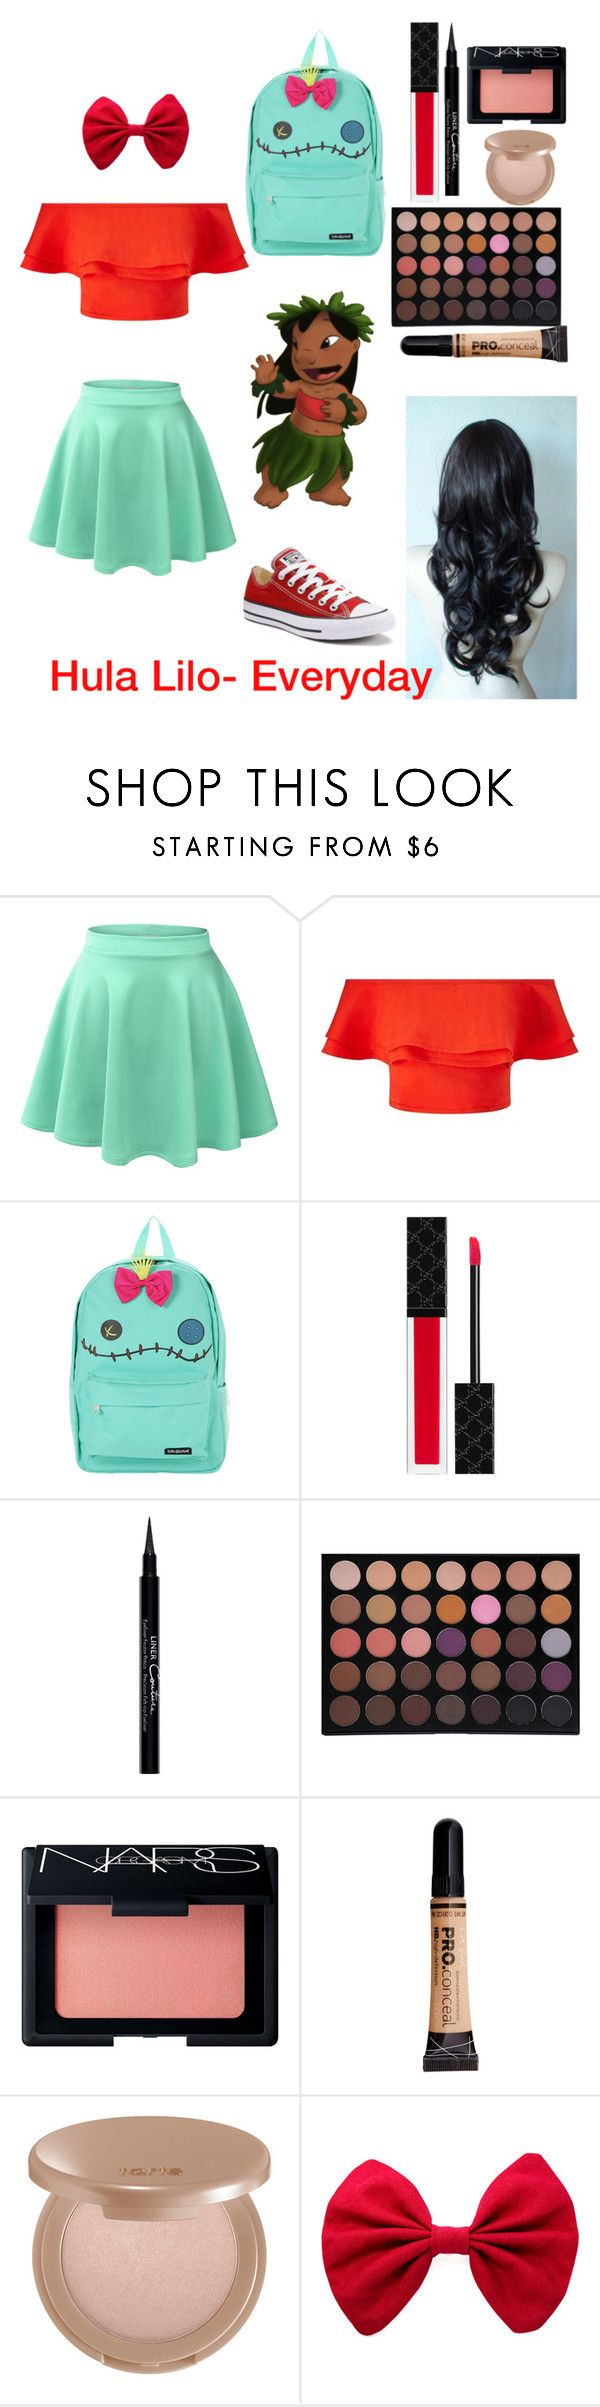 """Hula Lilo- Everyday"" by disneyfantasy ❤ liked on Polyvore featuring LE3NO, Miss Selfridge, Disney, Gucci, Givenchy, Morphe, NARS Cosmetics, tarte and Converse"